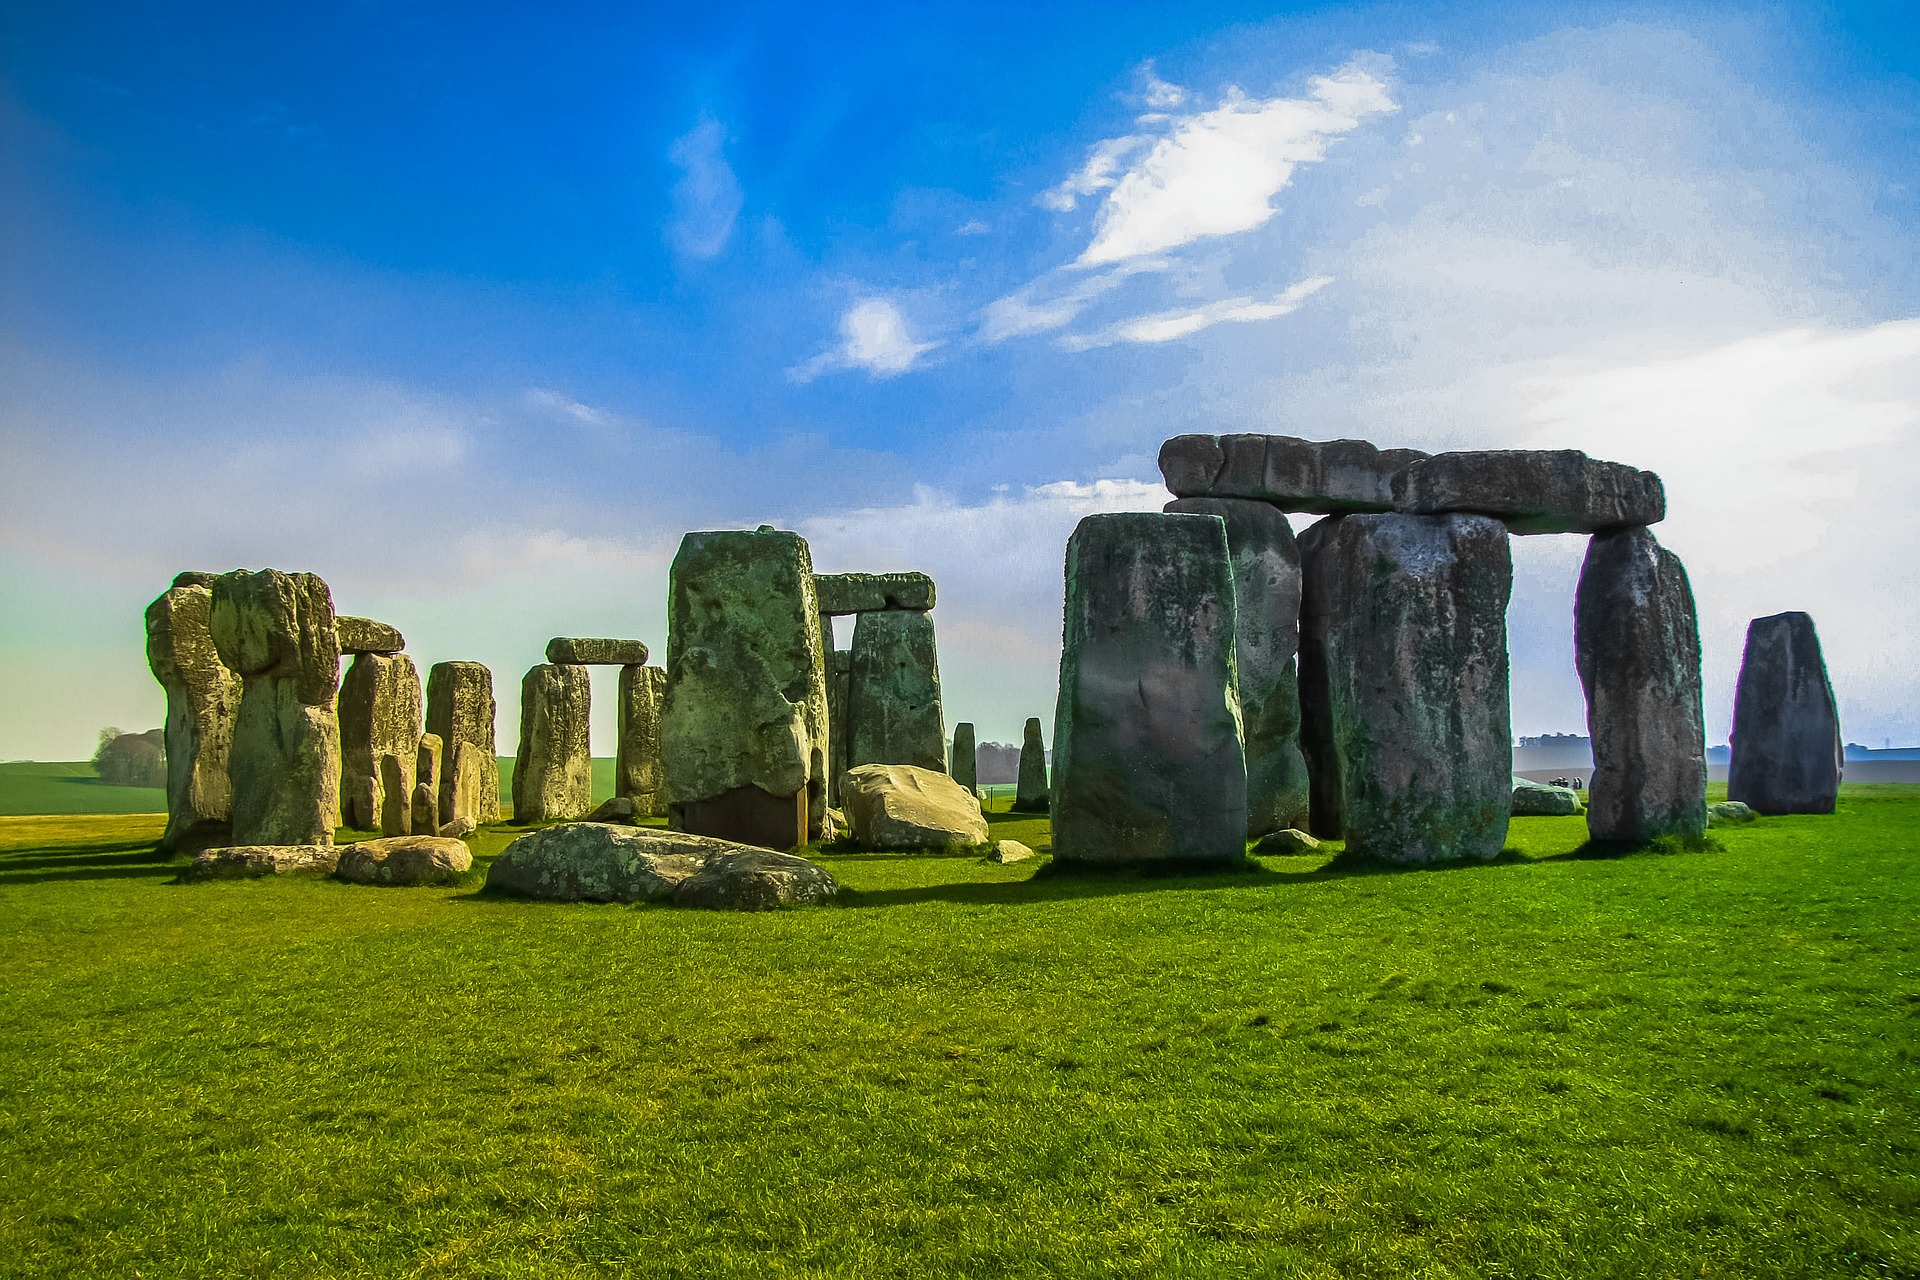 Bath And Stonehenge Tour - Visit two top UK attractions in one day with a luxury guided coach tour to Stonehenge and Bath, departing from London. Stopping first in the stunning city of Bath, and then heading to the ancient and iconic structure on Salisbury Plain, Stonehenge.